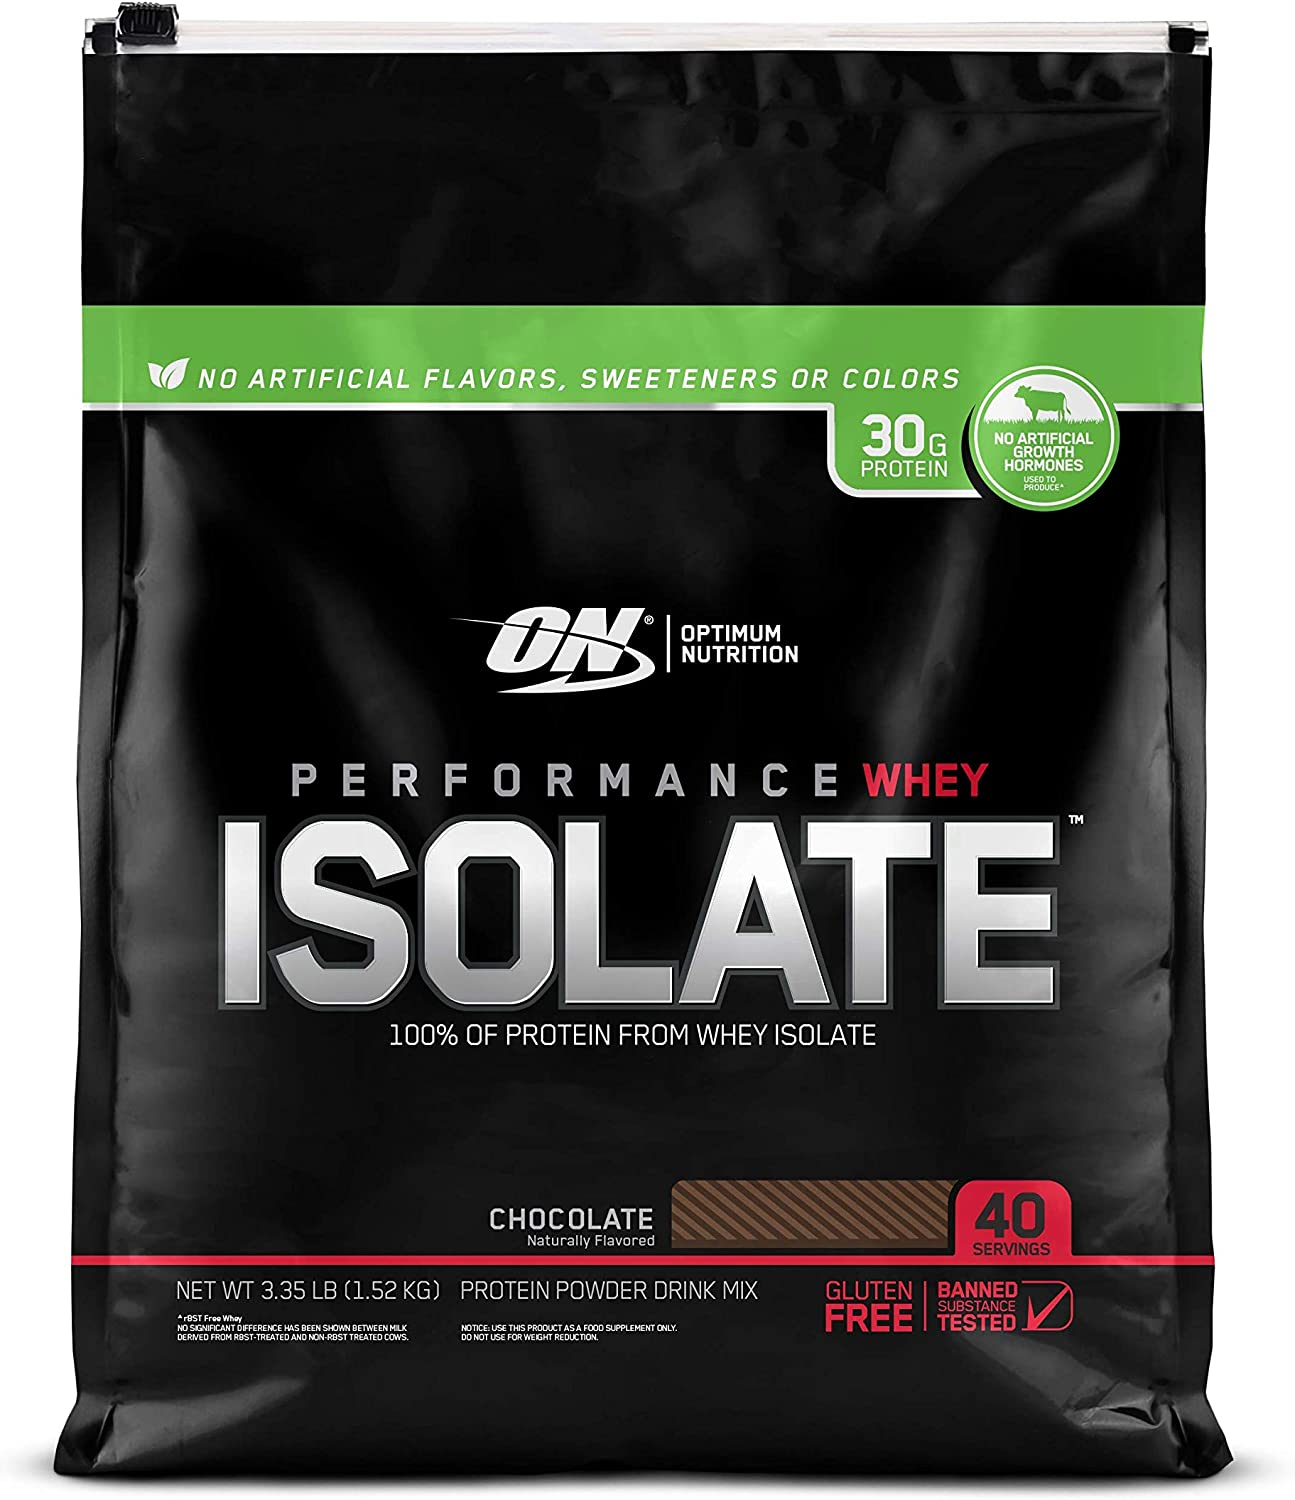 Optimum Nutrition Performance Whey Isolate Protein Powder, Naturally Flavored Chocolate, 40 Servings: Health & Personal Care